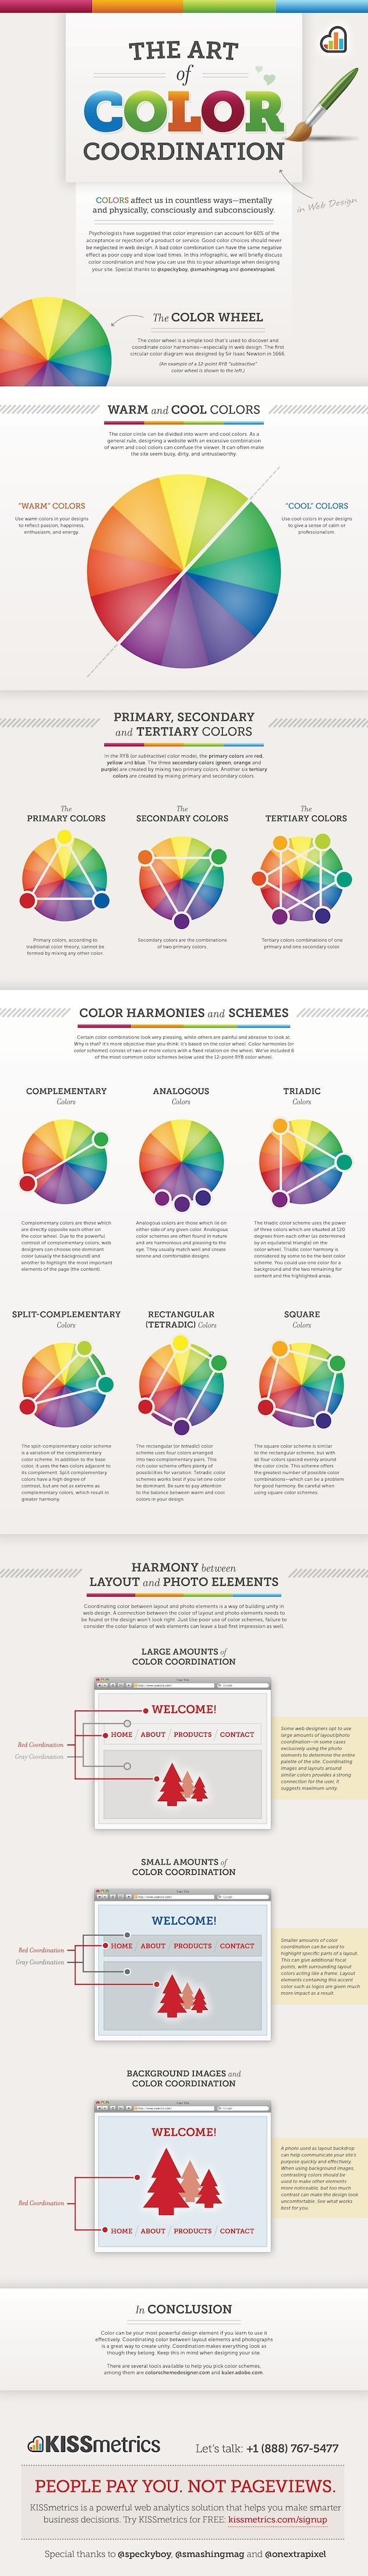 Infographic The Art Of Color Coordination Coordinating Colors Color Theory Color